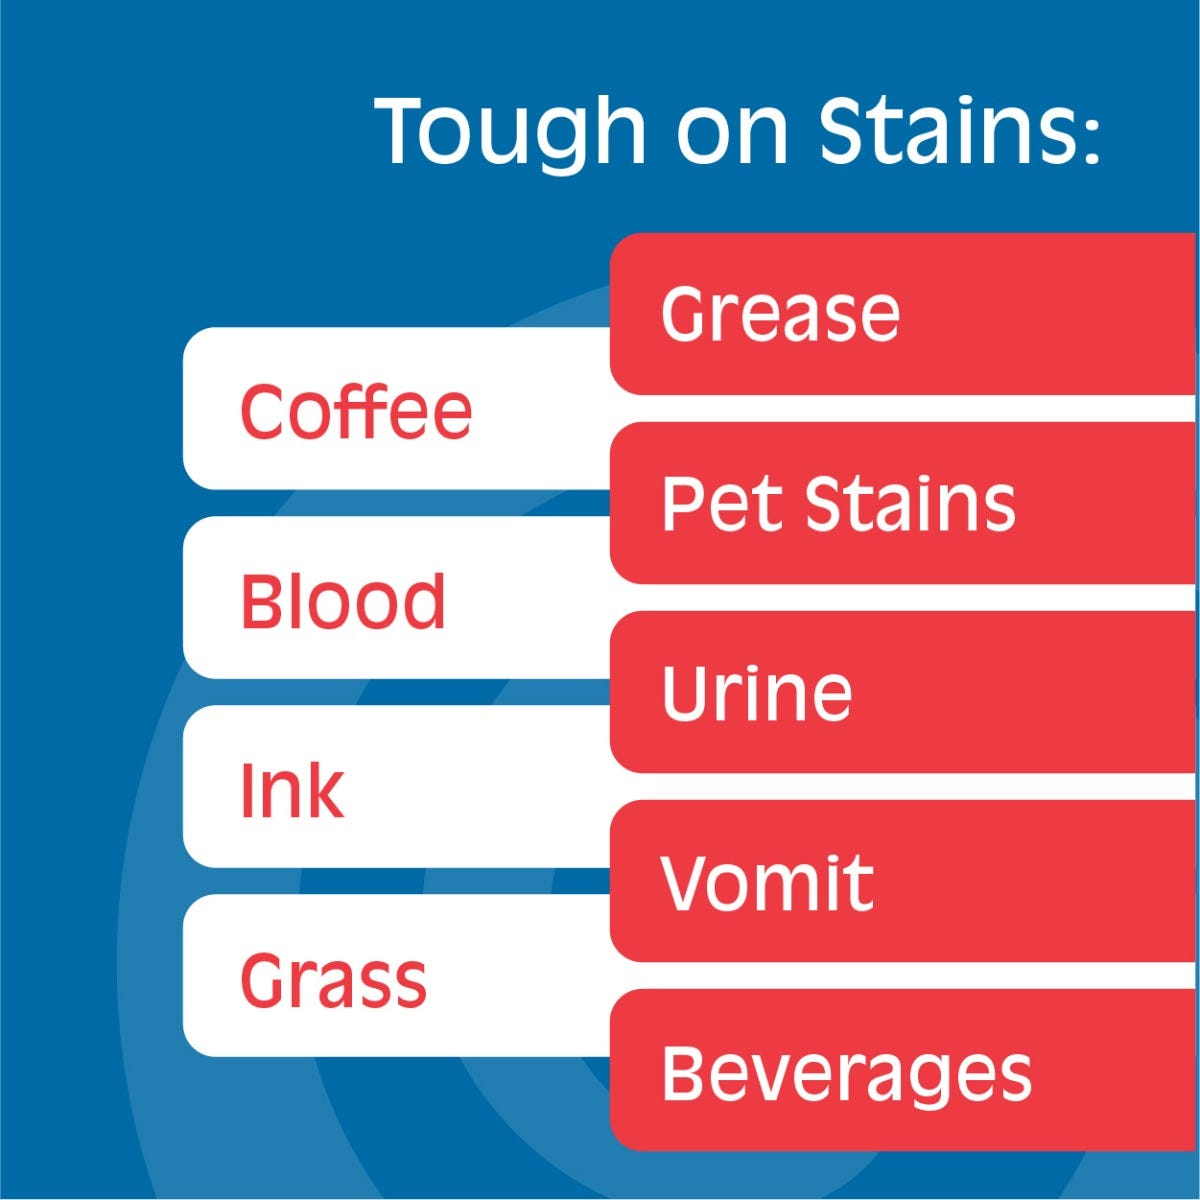 Stains to use Gonzo stain remover on